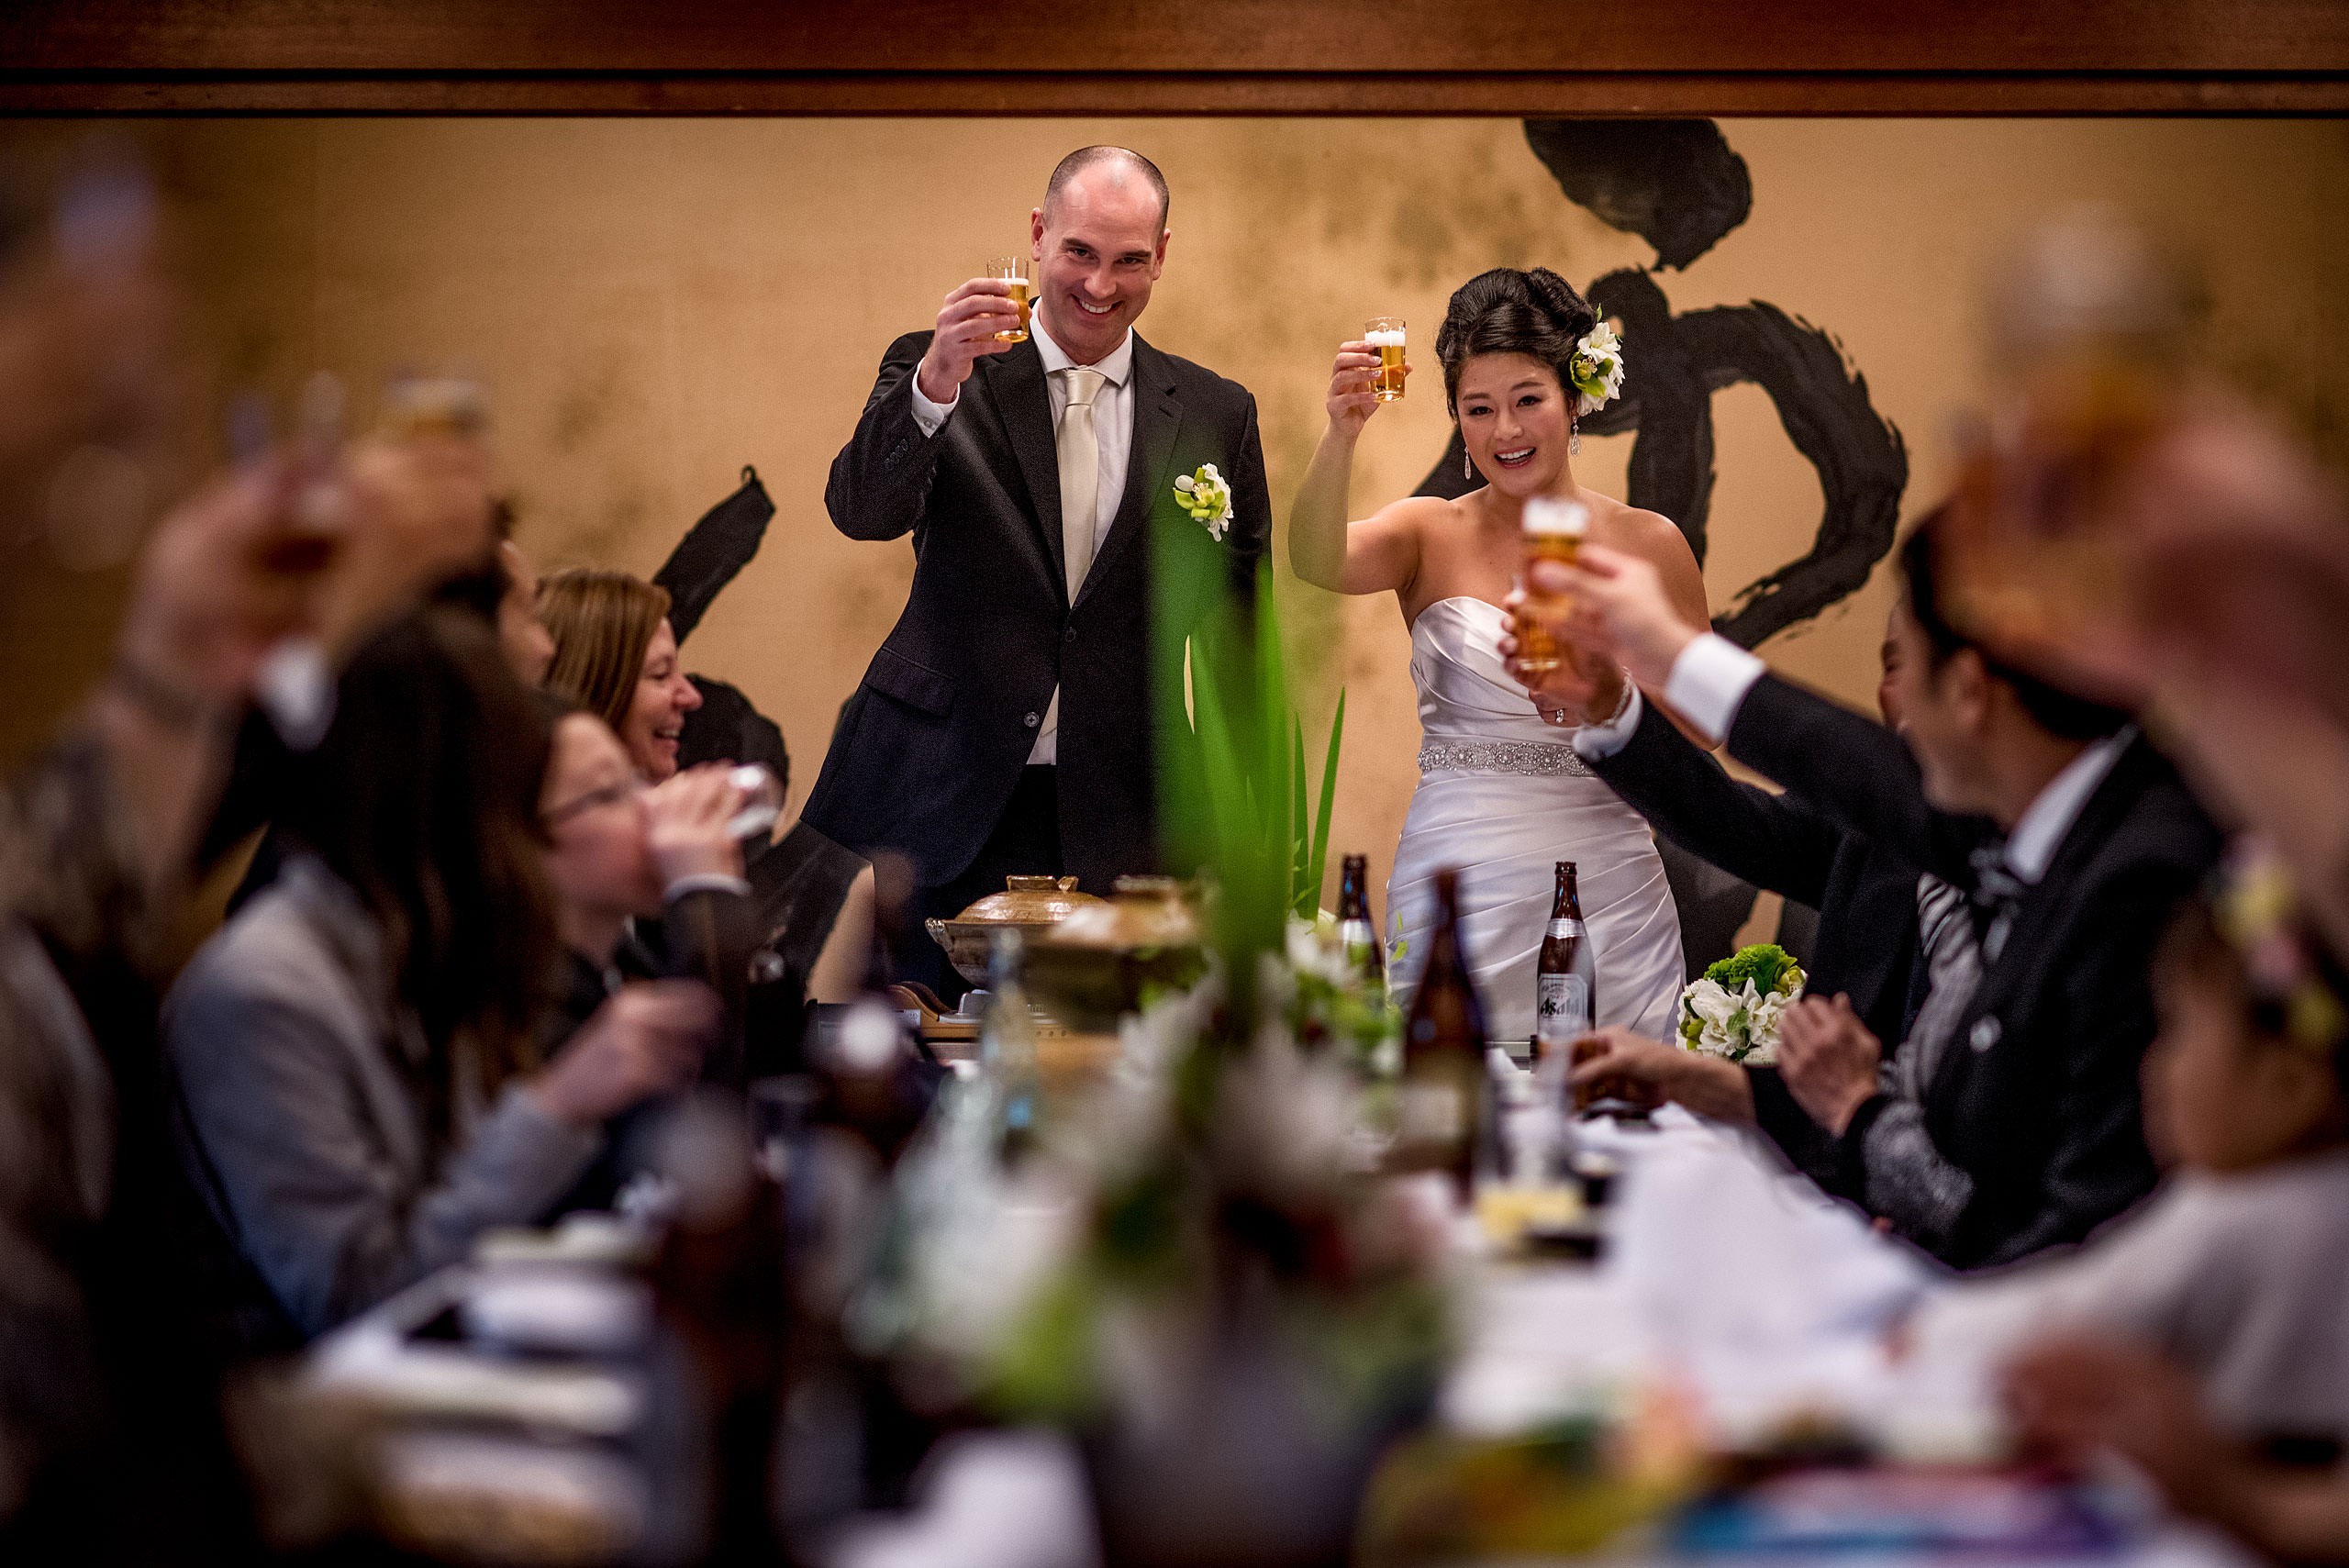 a bride and groom raising their glasses to their guests by Japan Destination Wedding Photographer Sean LeBlanc